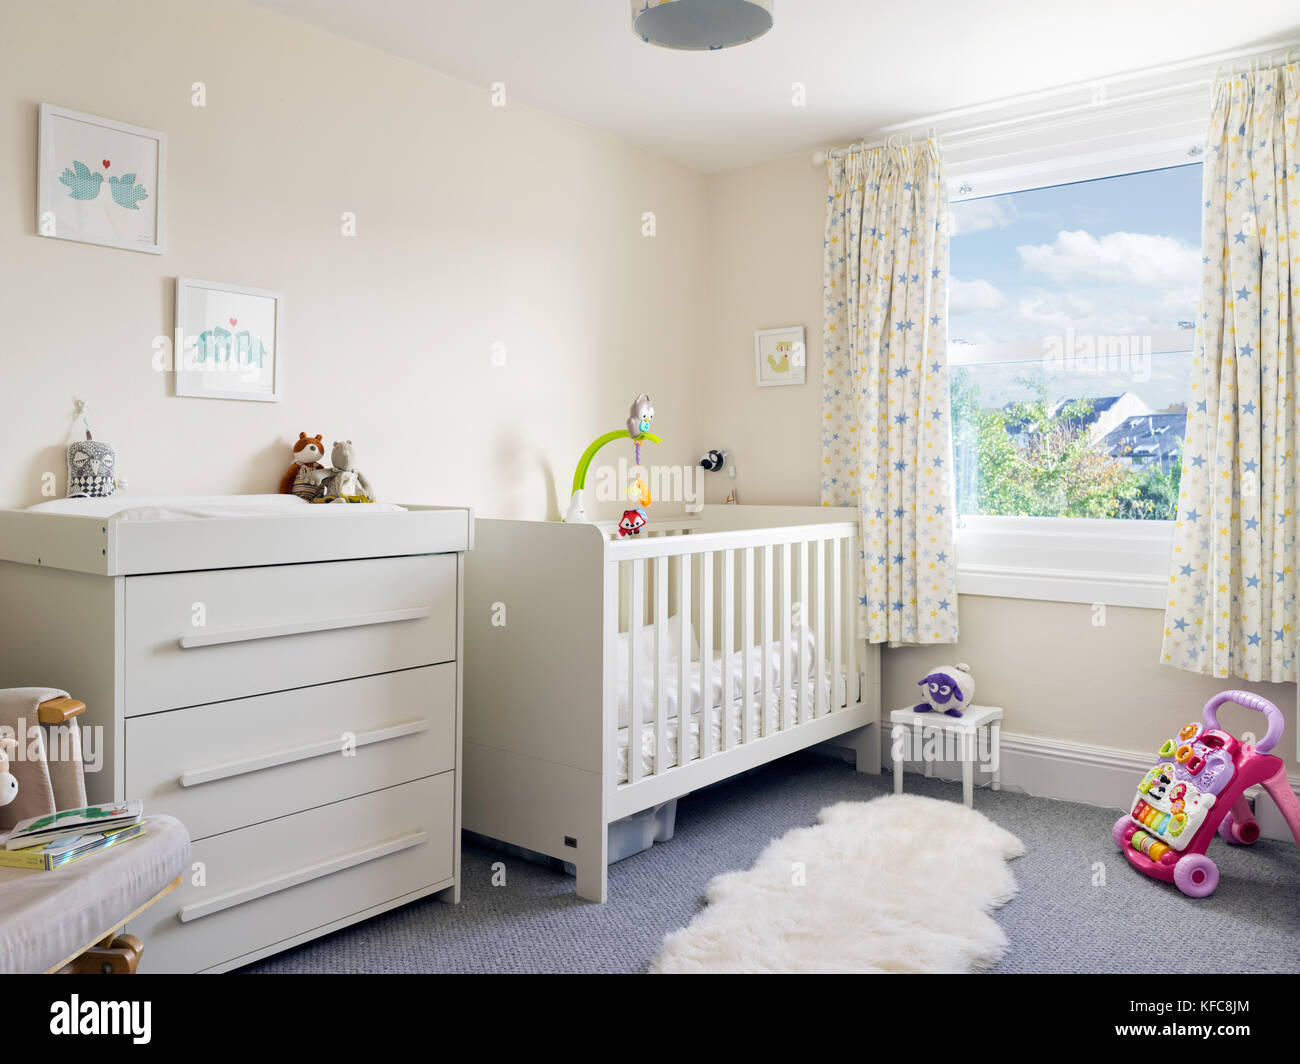 A modern, clean & tidy child's nursery room decorated in a contemporary style including a cot & changing - Stock Image